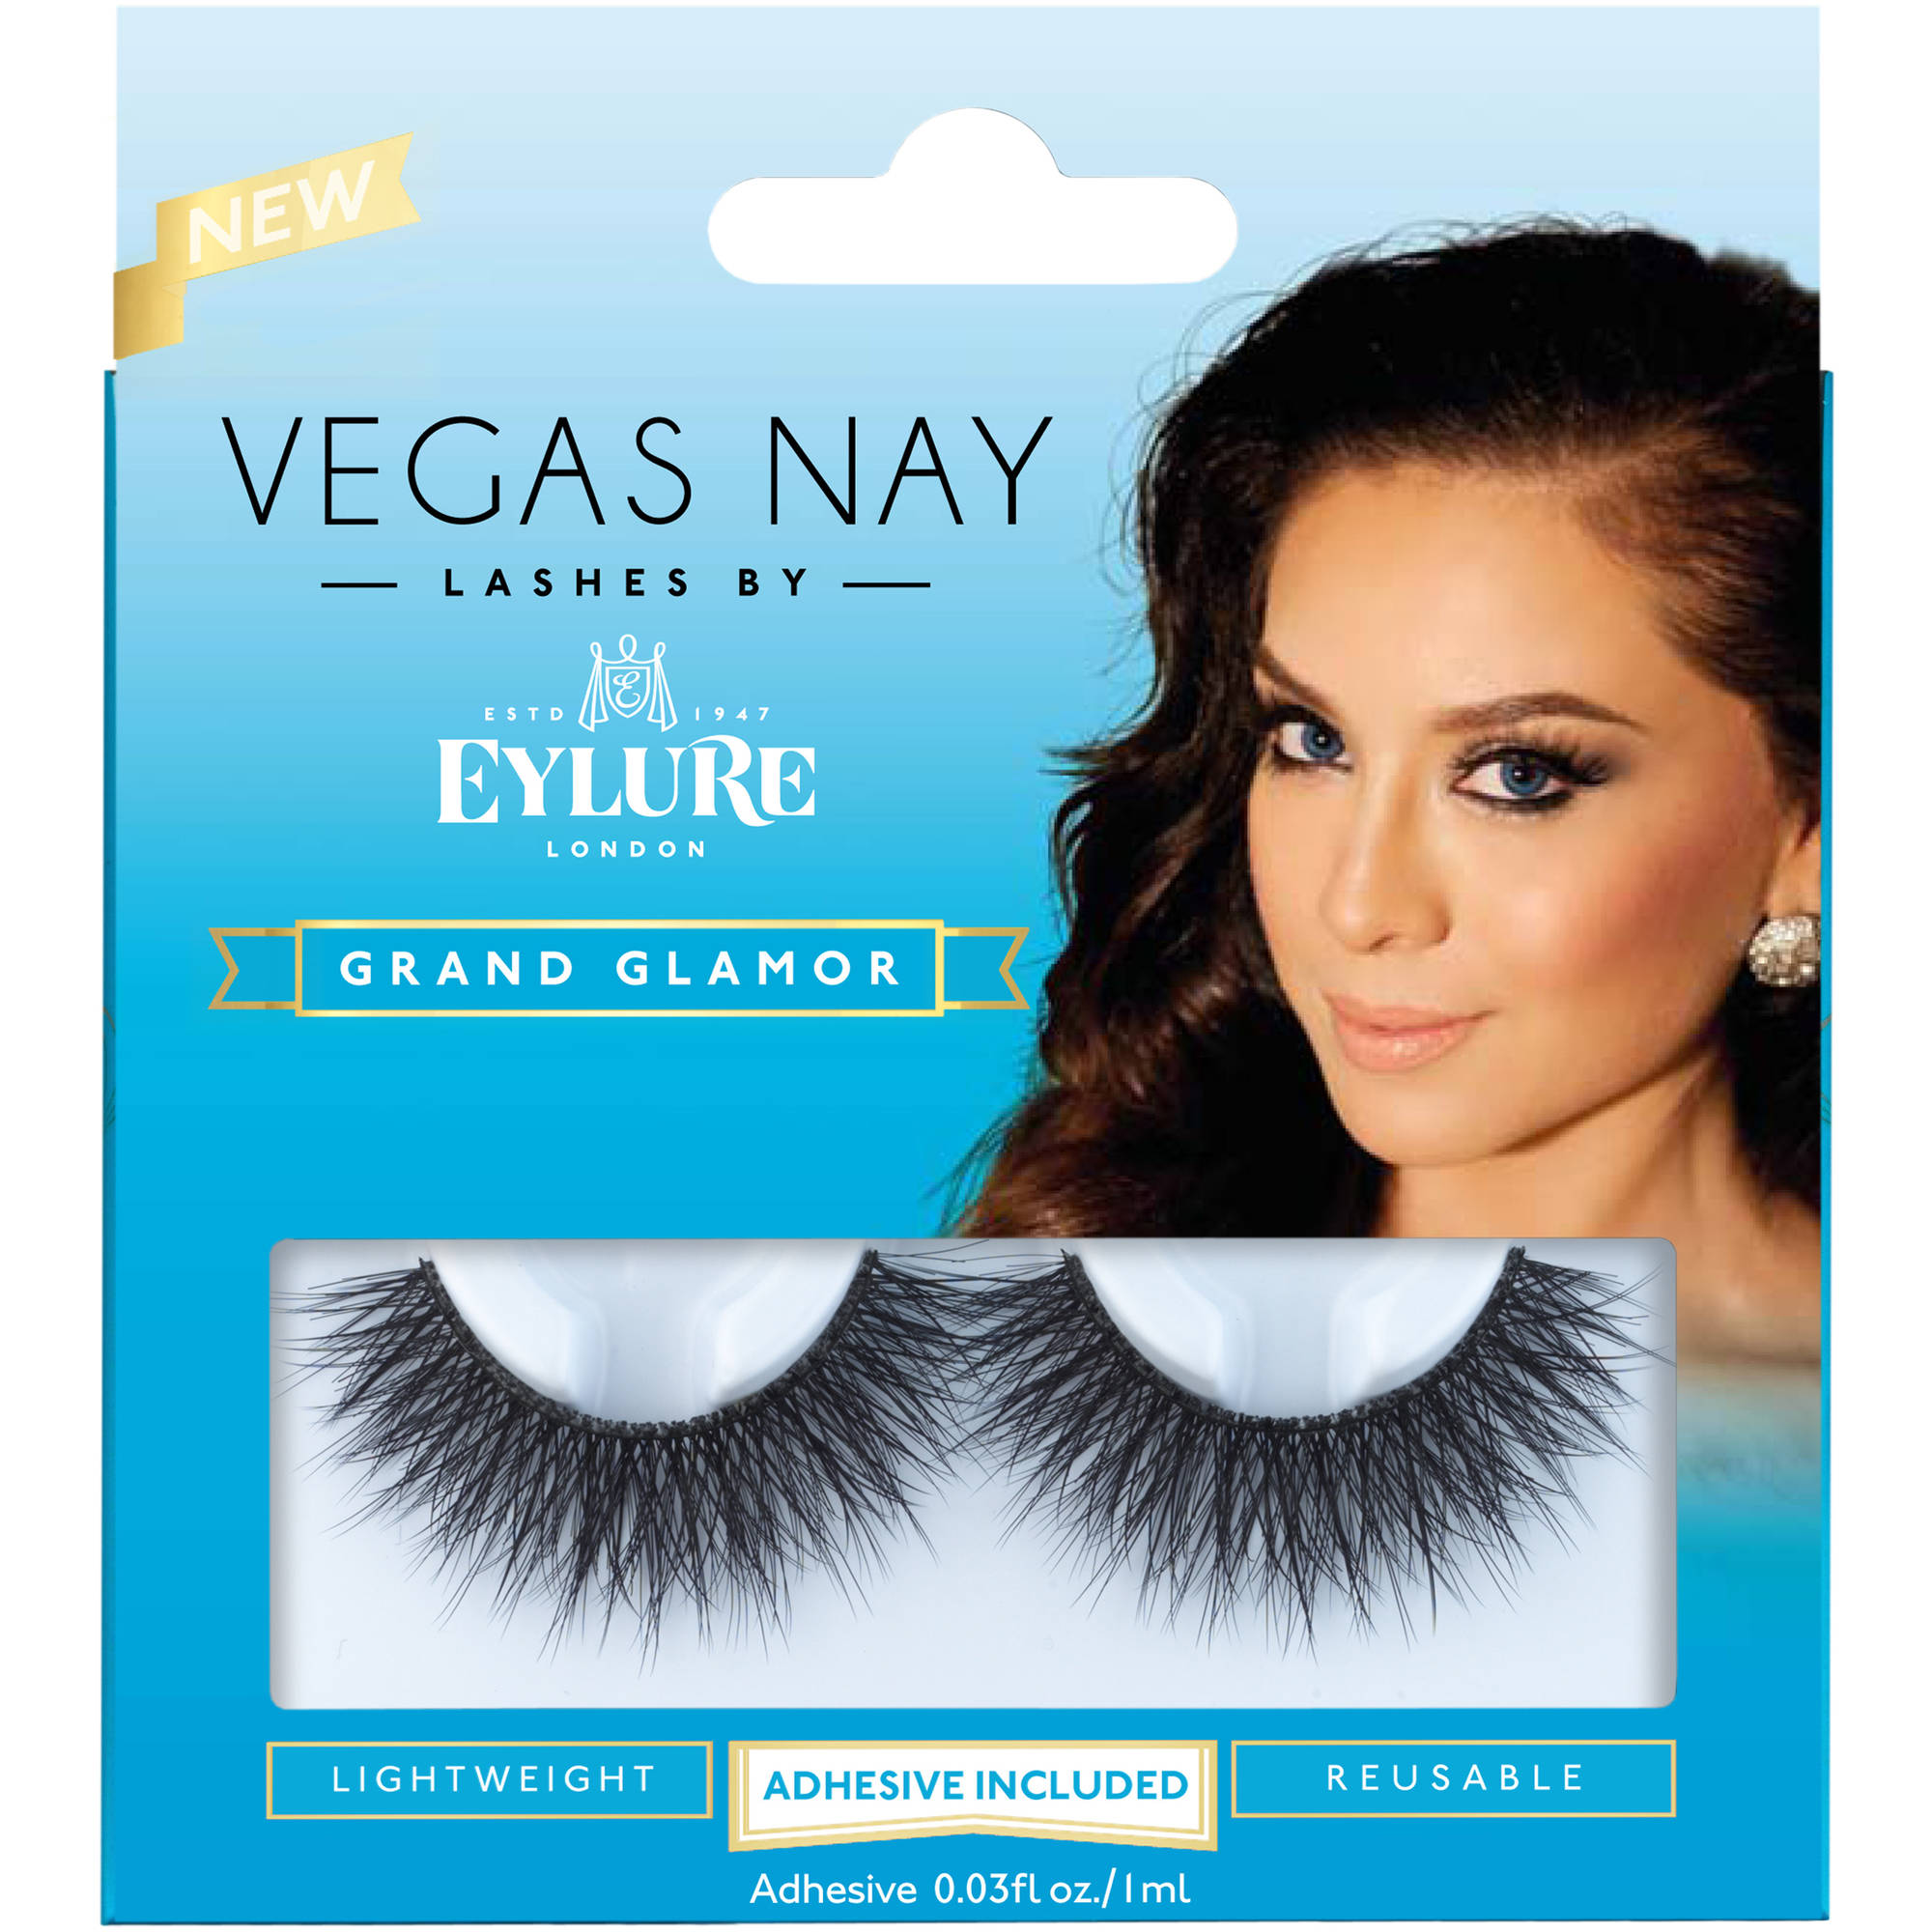 Vegas Nay by Eylure Grand Glamor Eyelashes Kit, 2 pc